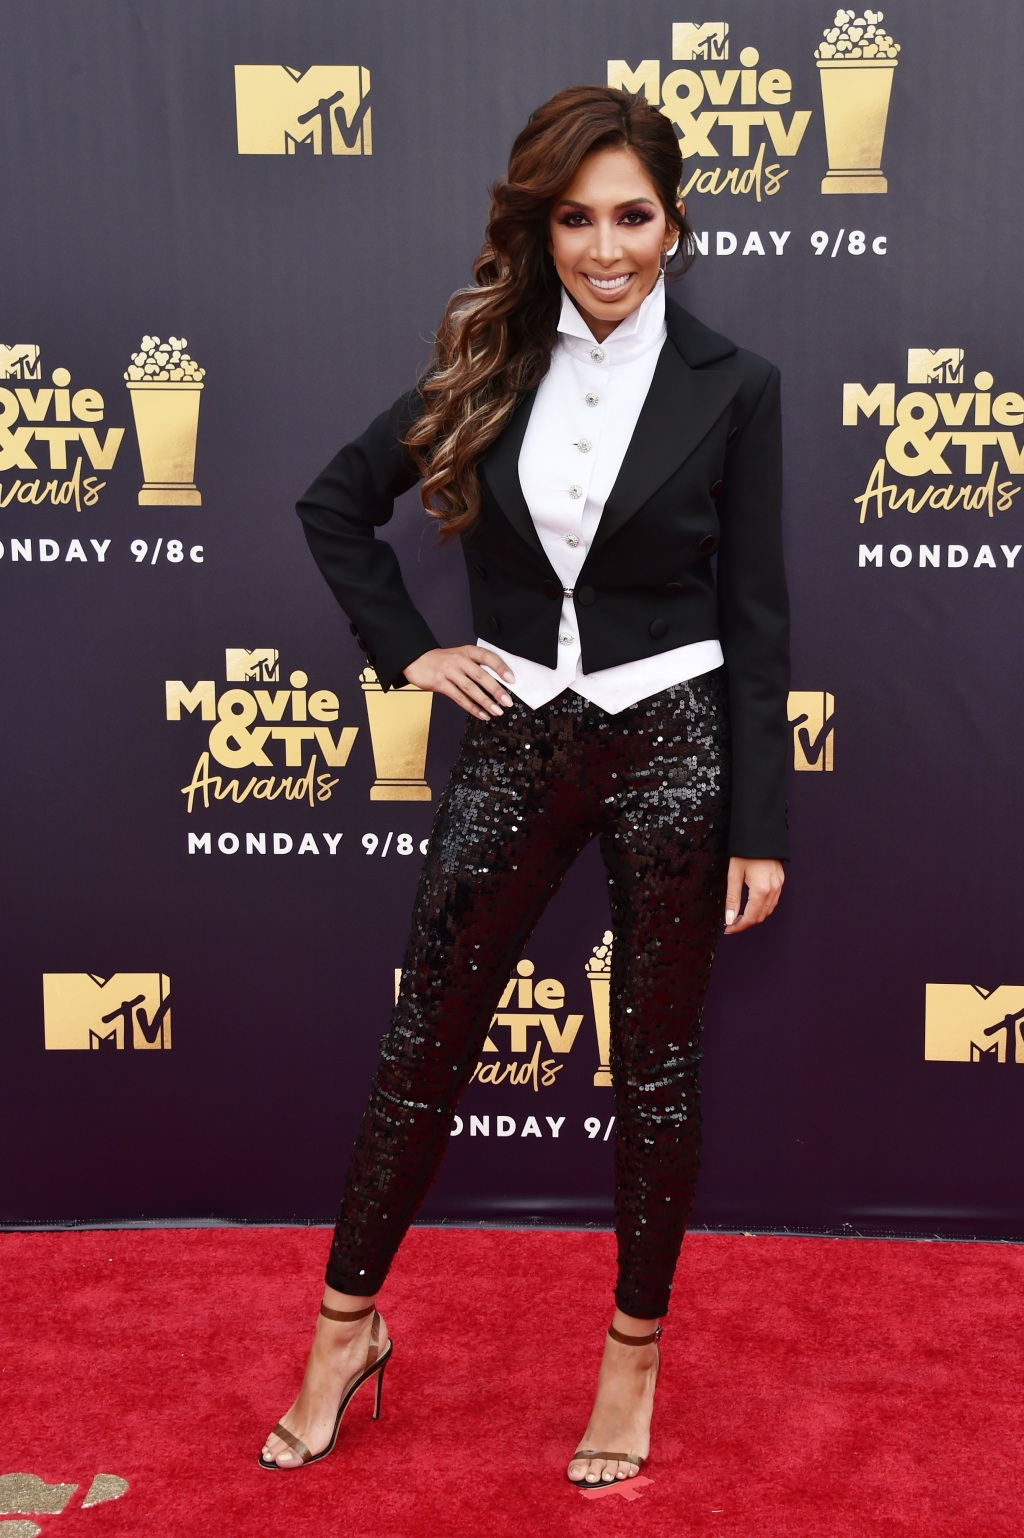 Farrah Abraham, MTV Awards